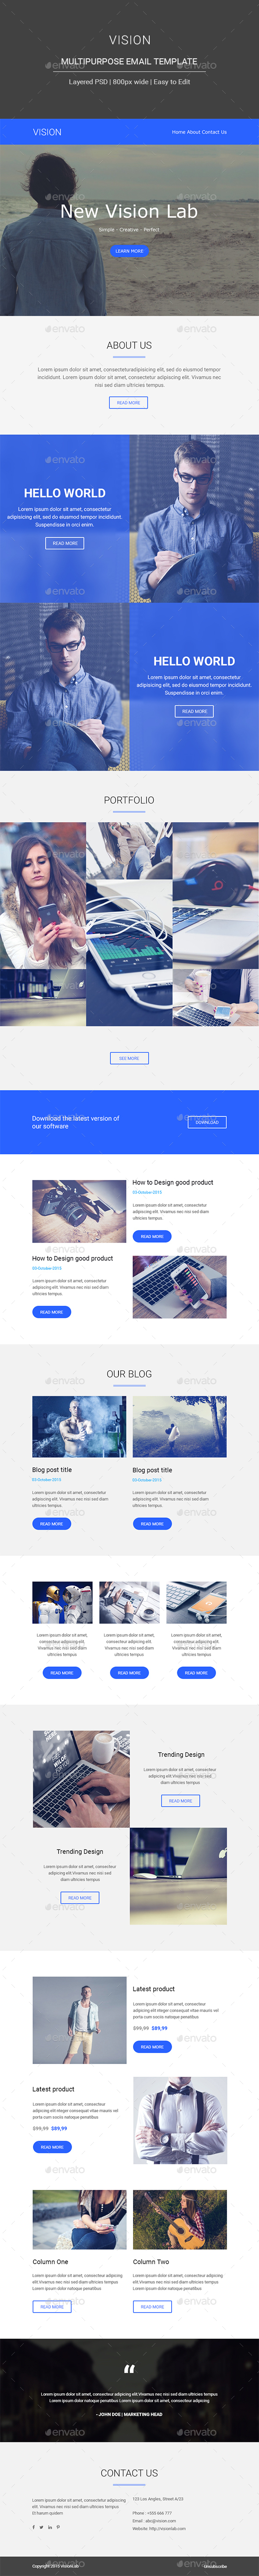 Vision Multipurpose Email Template - E-newsletters Web Elements